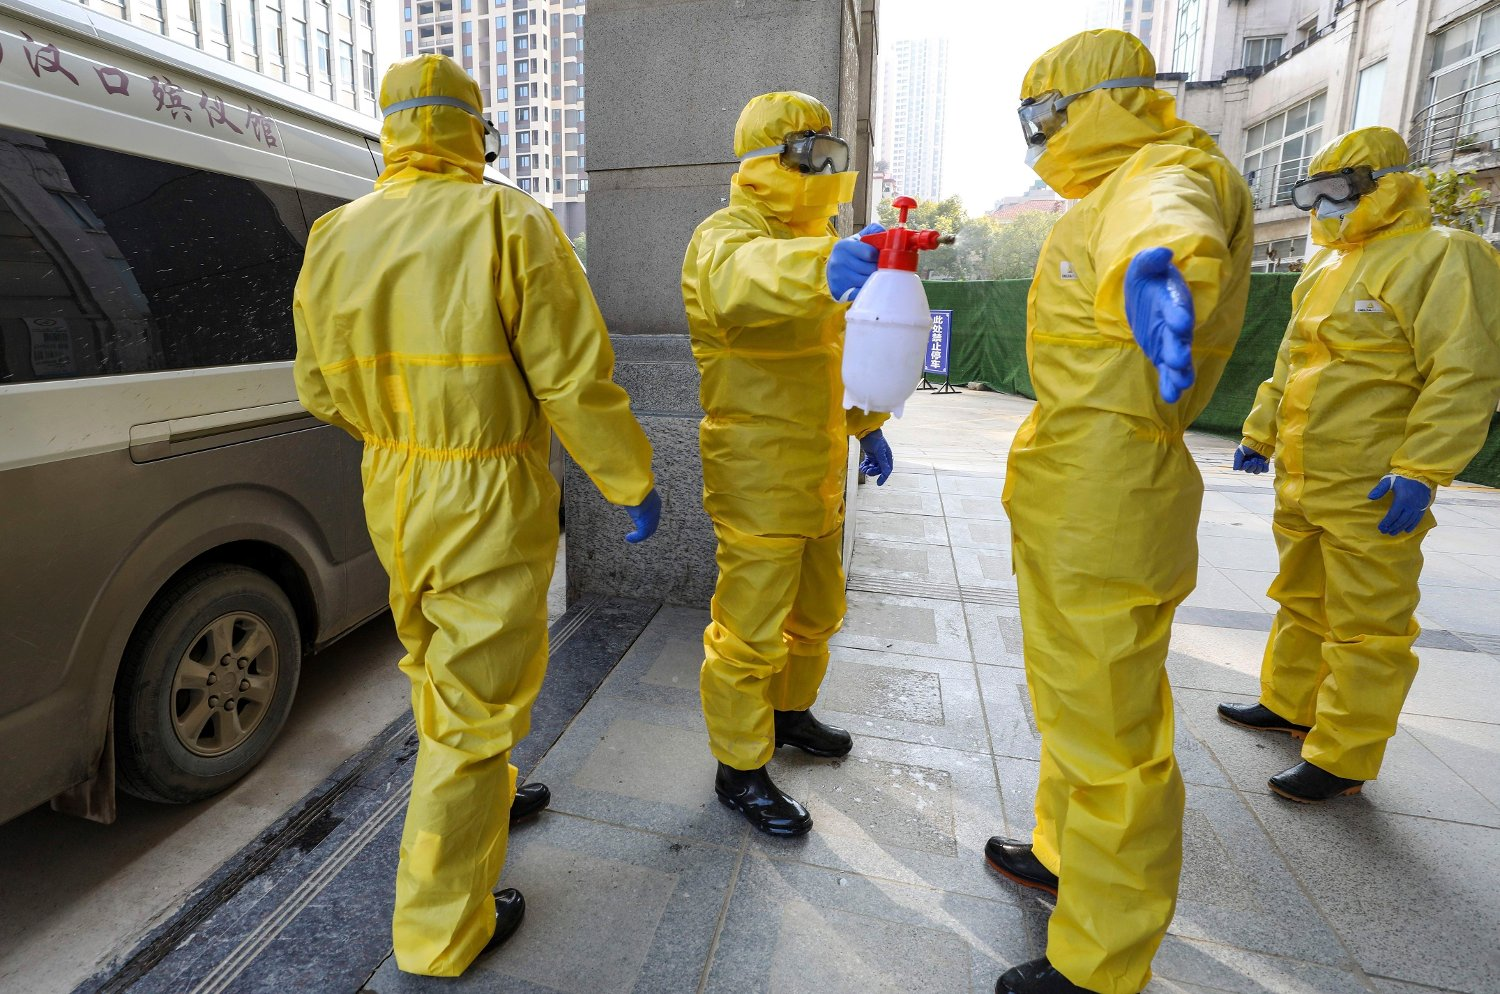 Funeral workers disinfect themselves after handling a virus victim in Wuhan in central China's Hubei Province, Thursday, Jan. 30, 2020. As global anxiety about a new virus rises, Chinese authorities are striving to keep 50 million people in cities at the center of the outbreak both isolated and fed in the biggest anti-disease effort ever attempted.